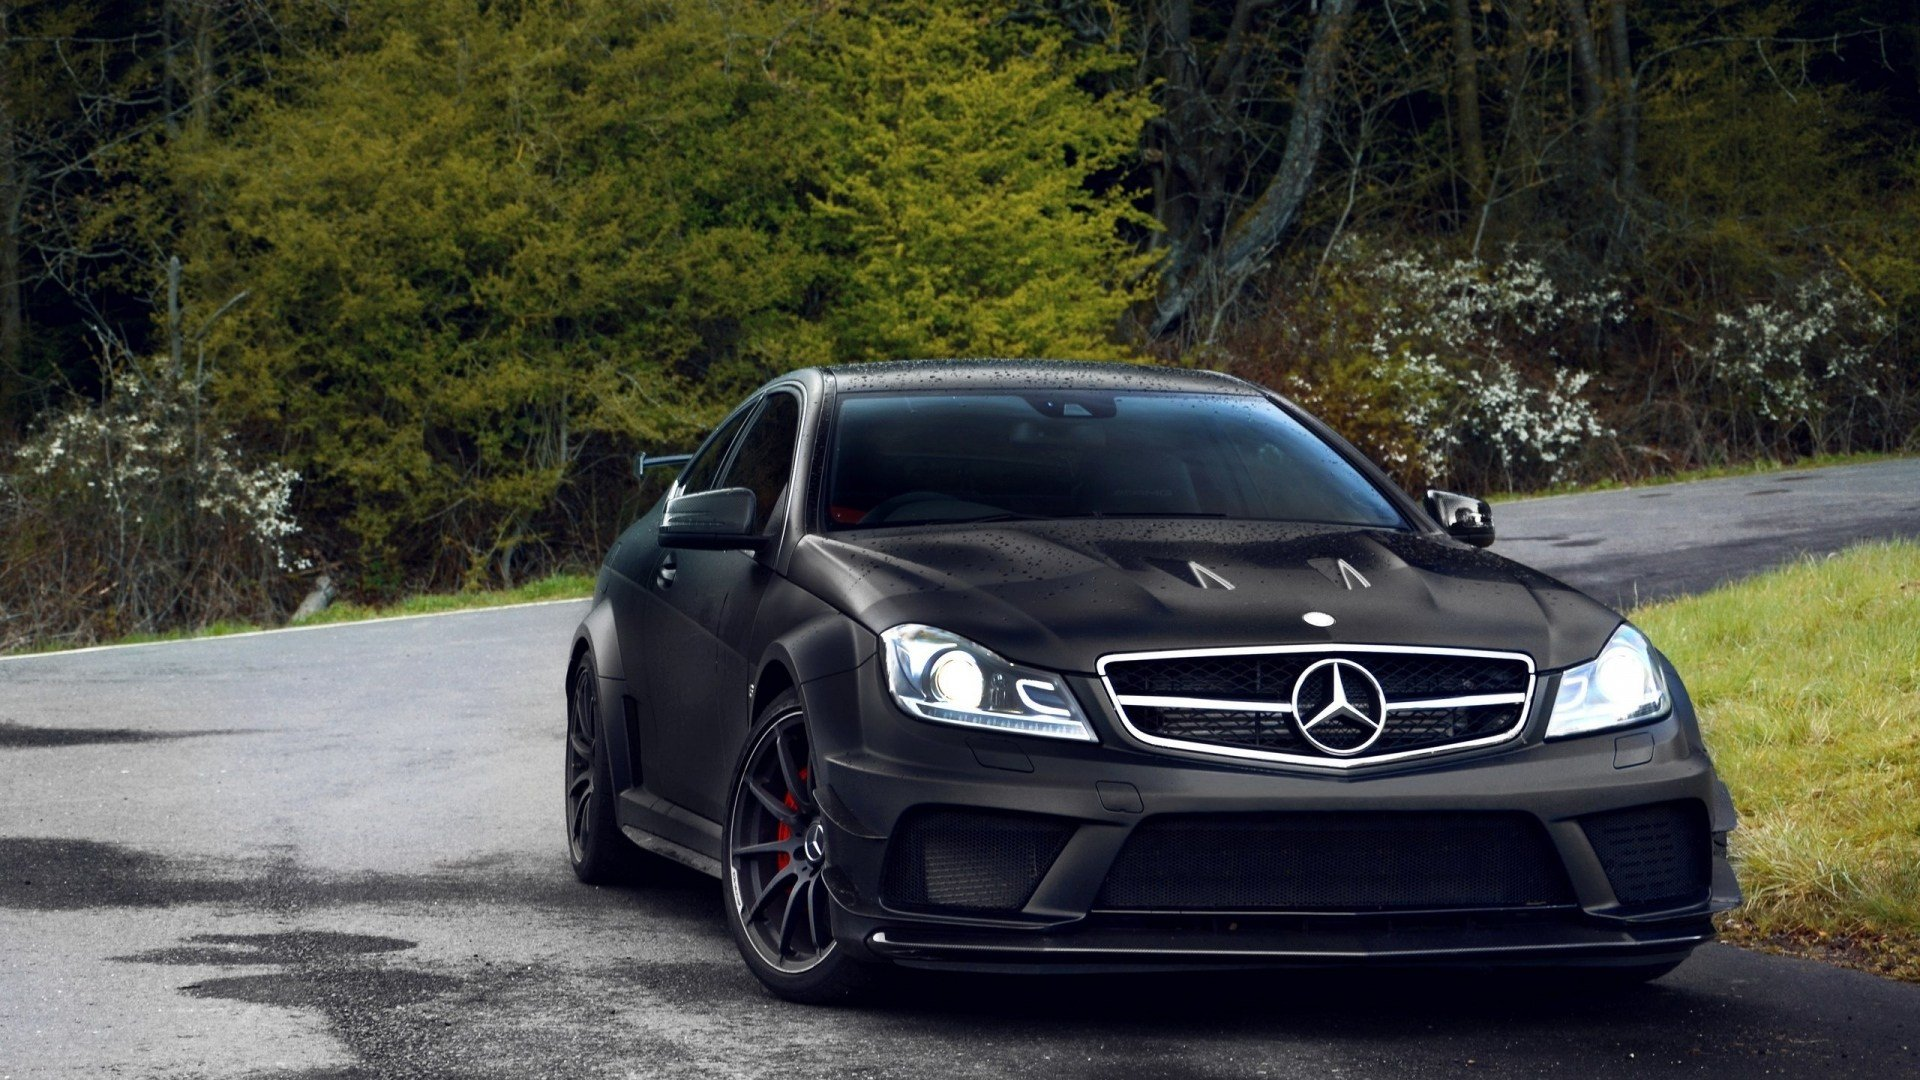 Latest Full Hd Wallpaper Mercedes Benz Sports Car Roadster Tuning Free Download